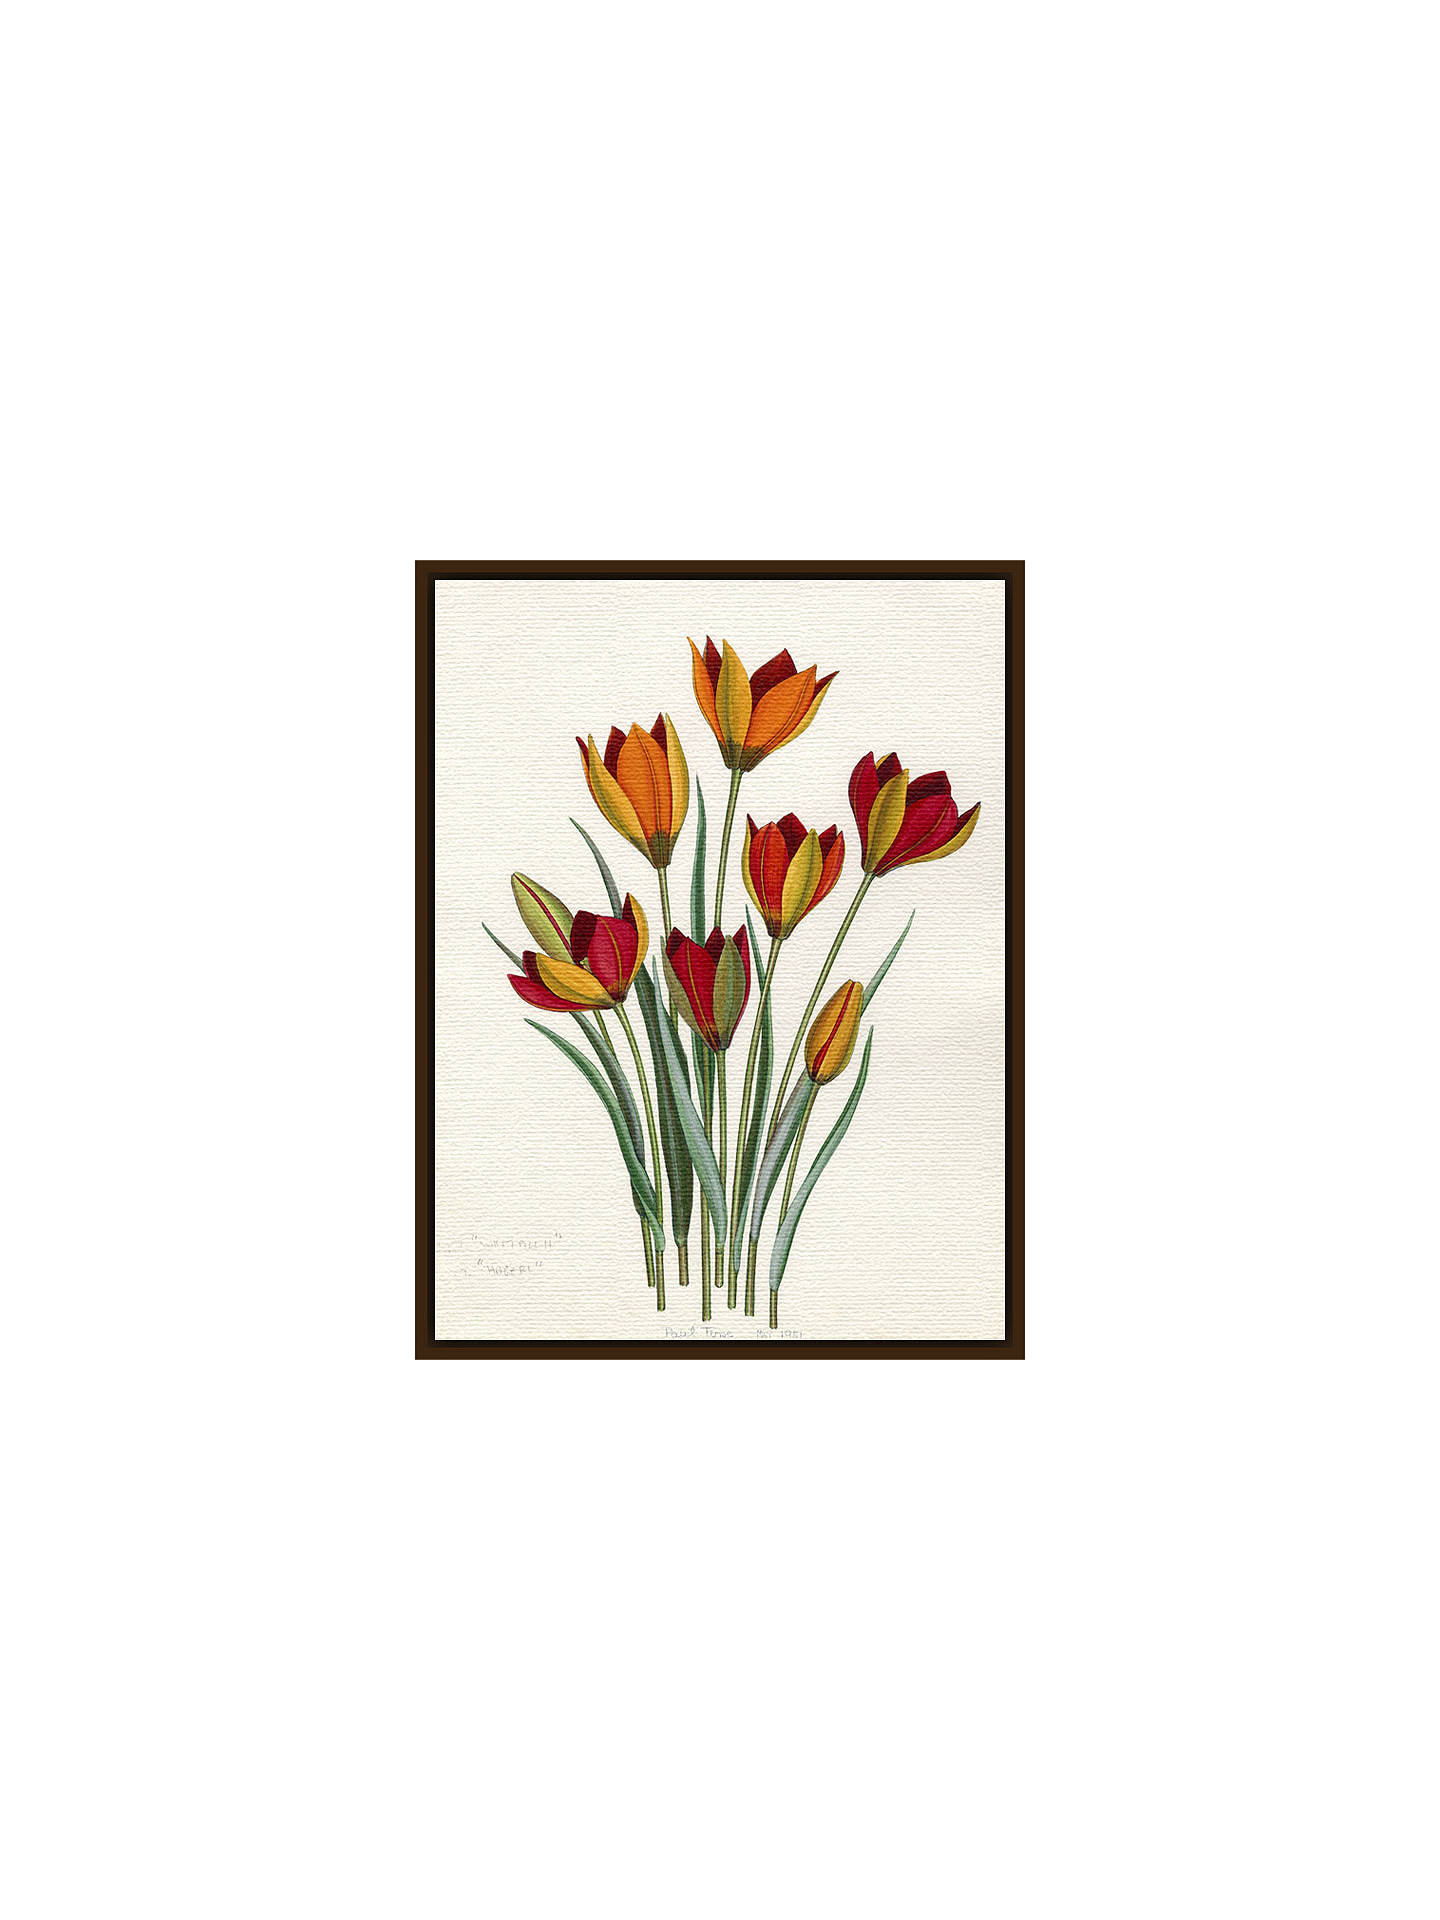 BuyRoyal Horticultural Society, John Paul Wellington Furse - T. whittallii, T. hageri, Dark Brown Framed Canvas, 40 x 50cm Online at johnlewis.com